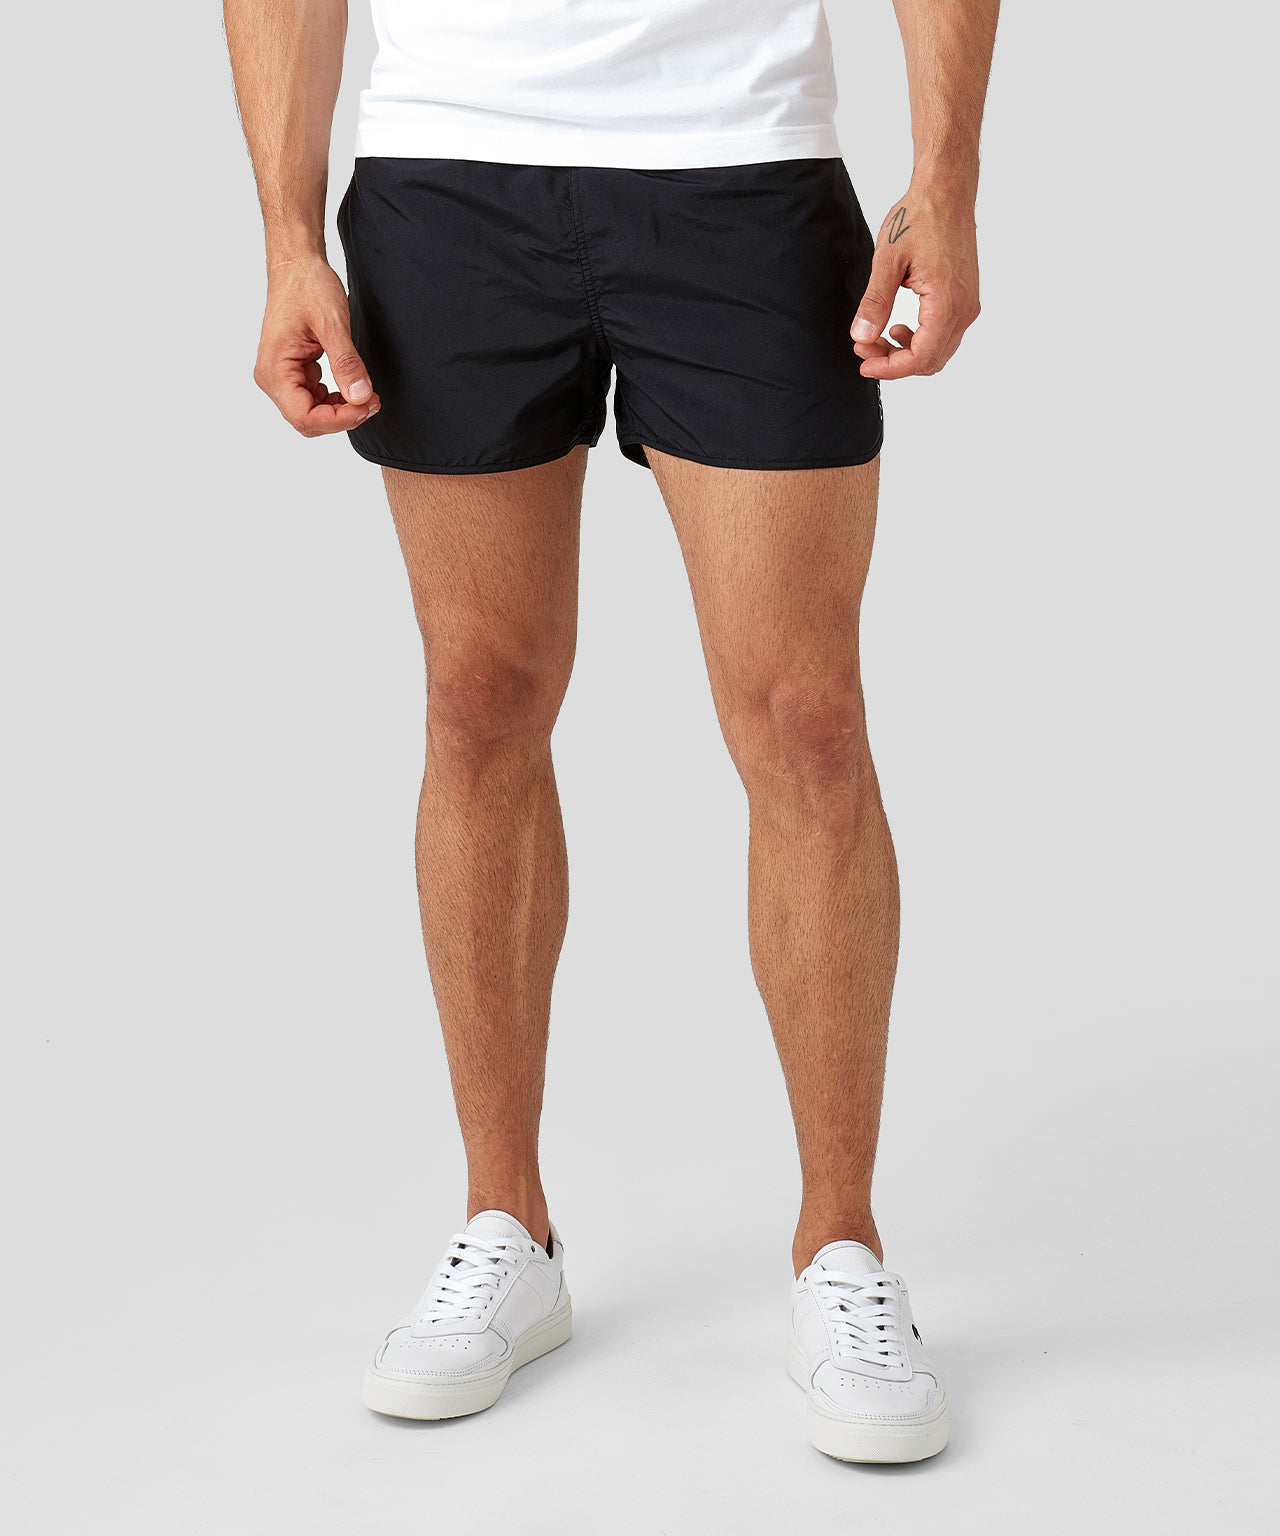 Marathon Shorts - black